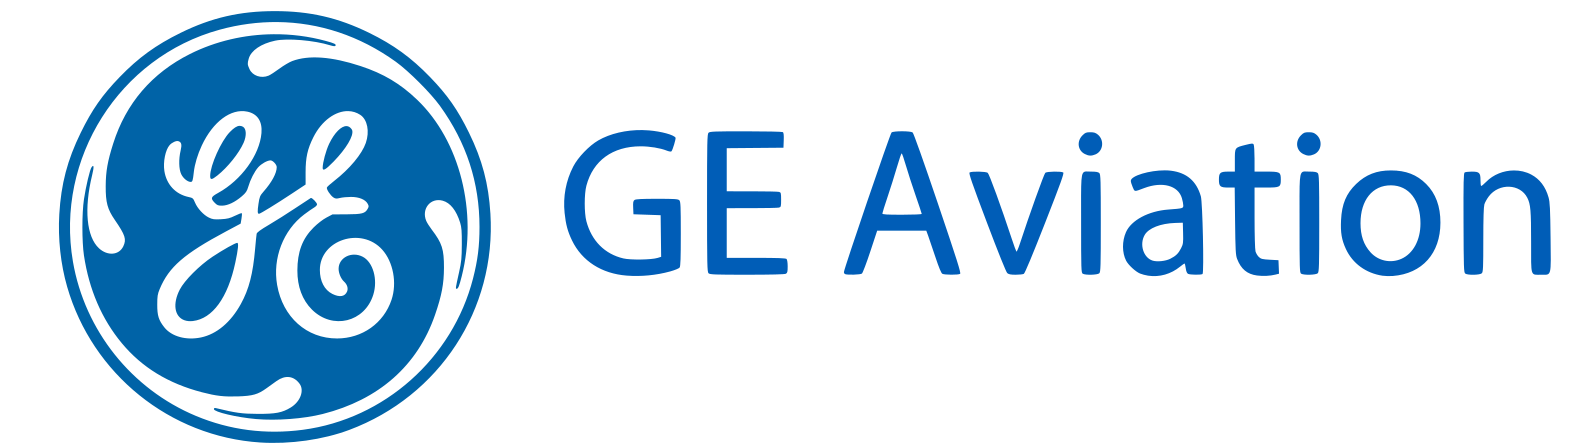 File:GE Aviation.svg.